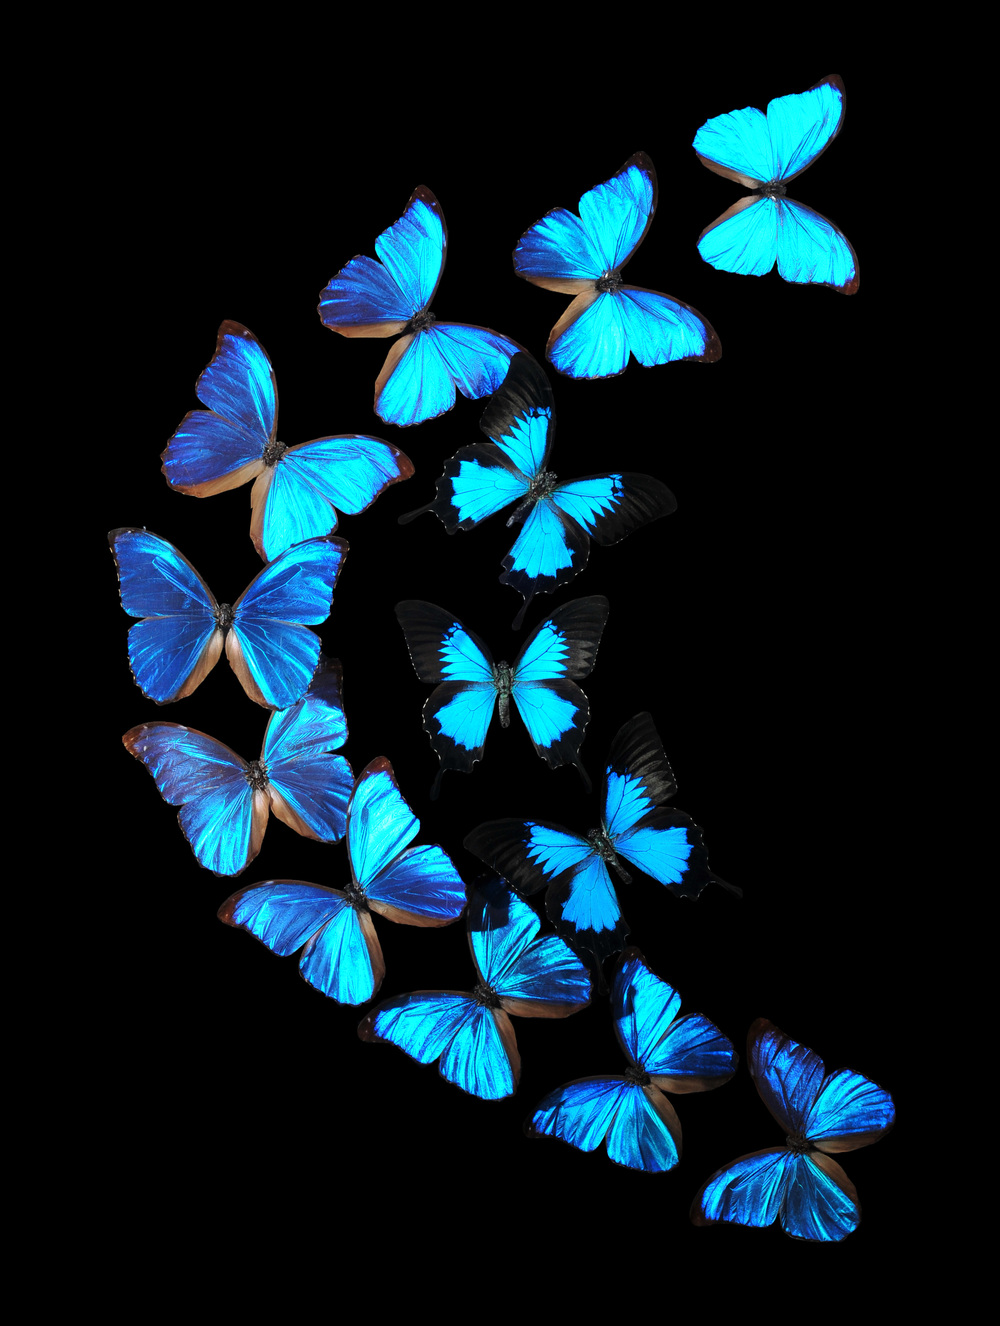 Blue Morpho Flight (18x24, 24x36)